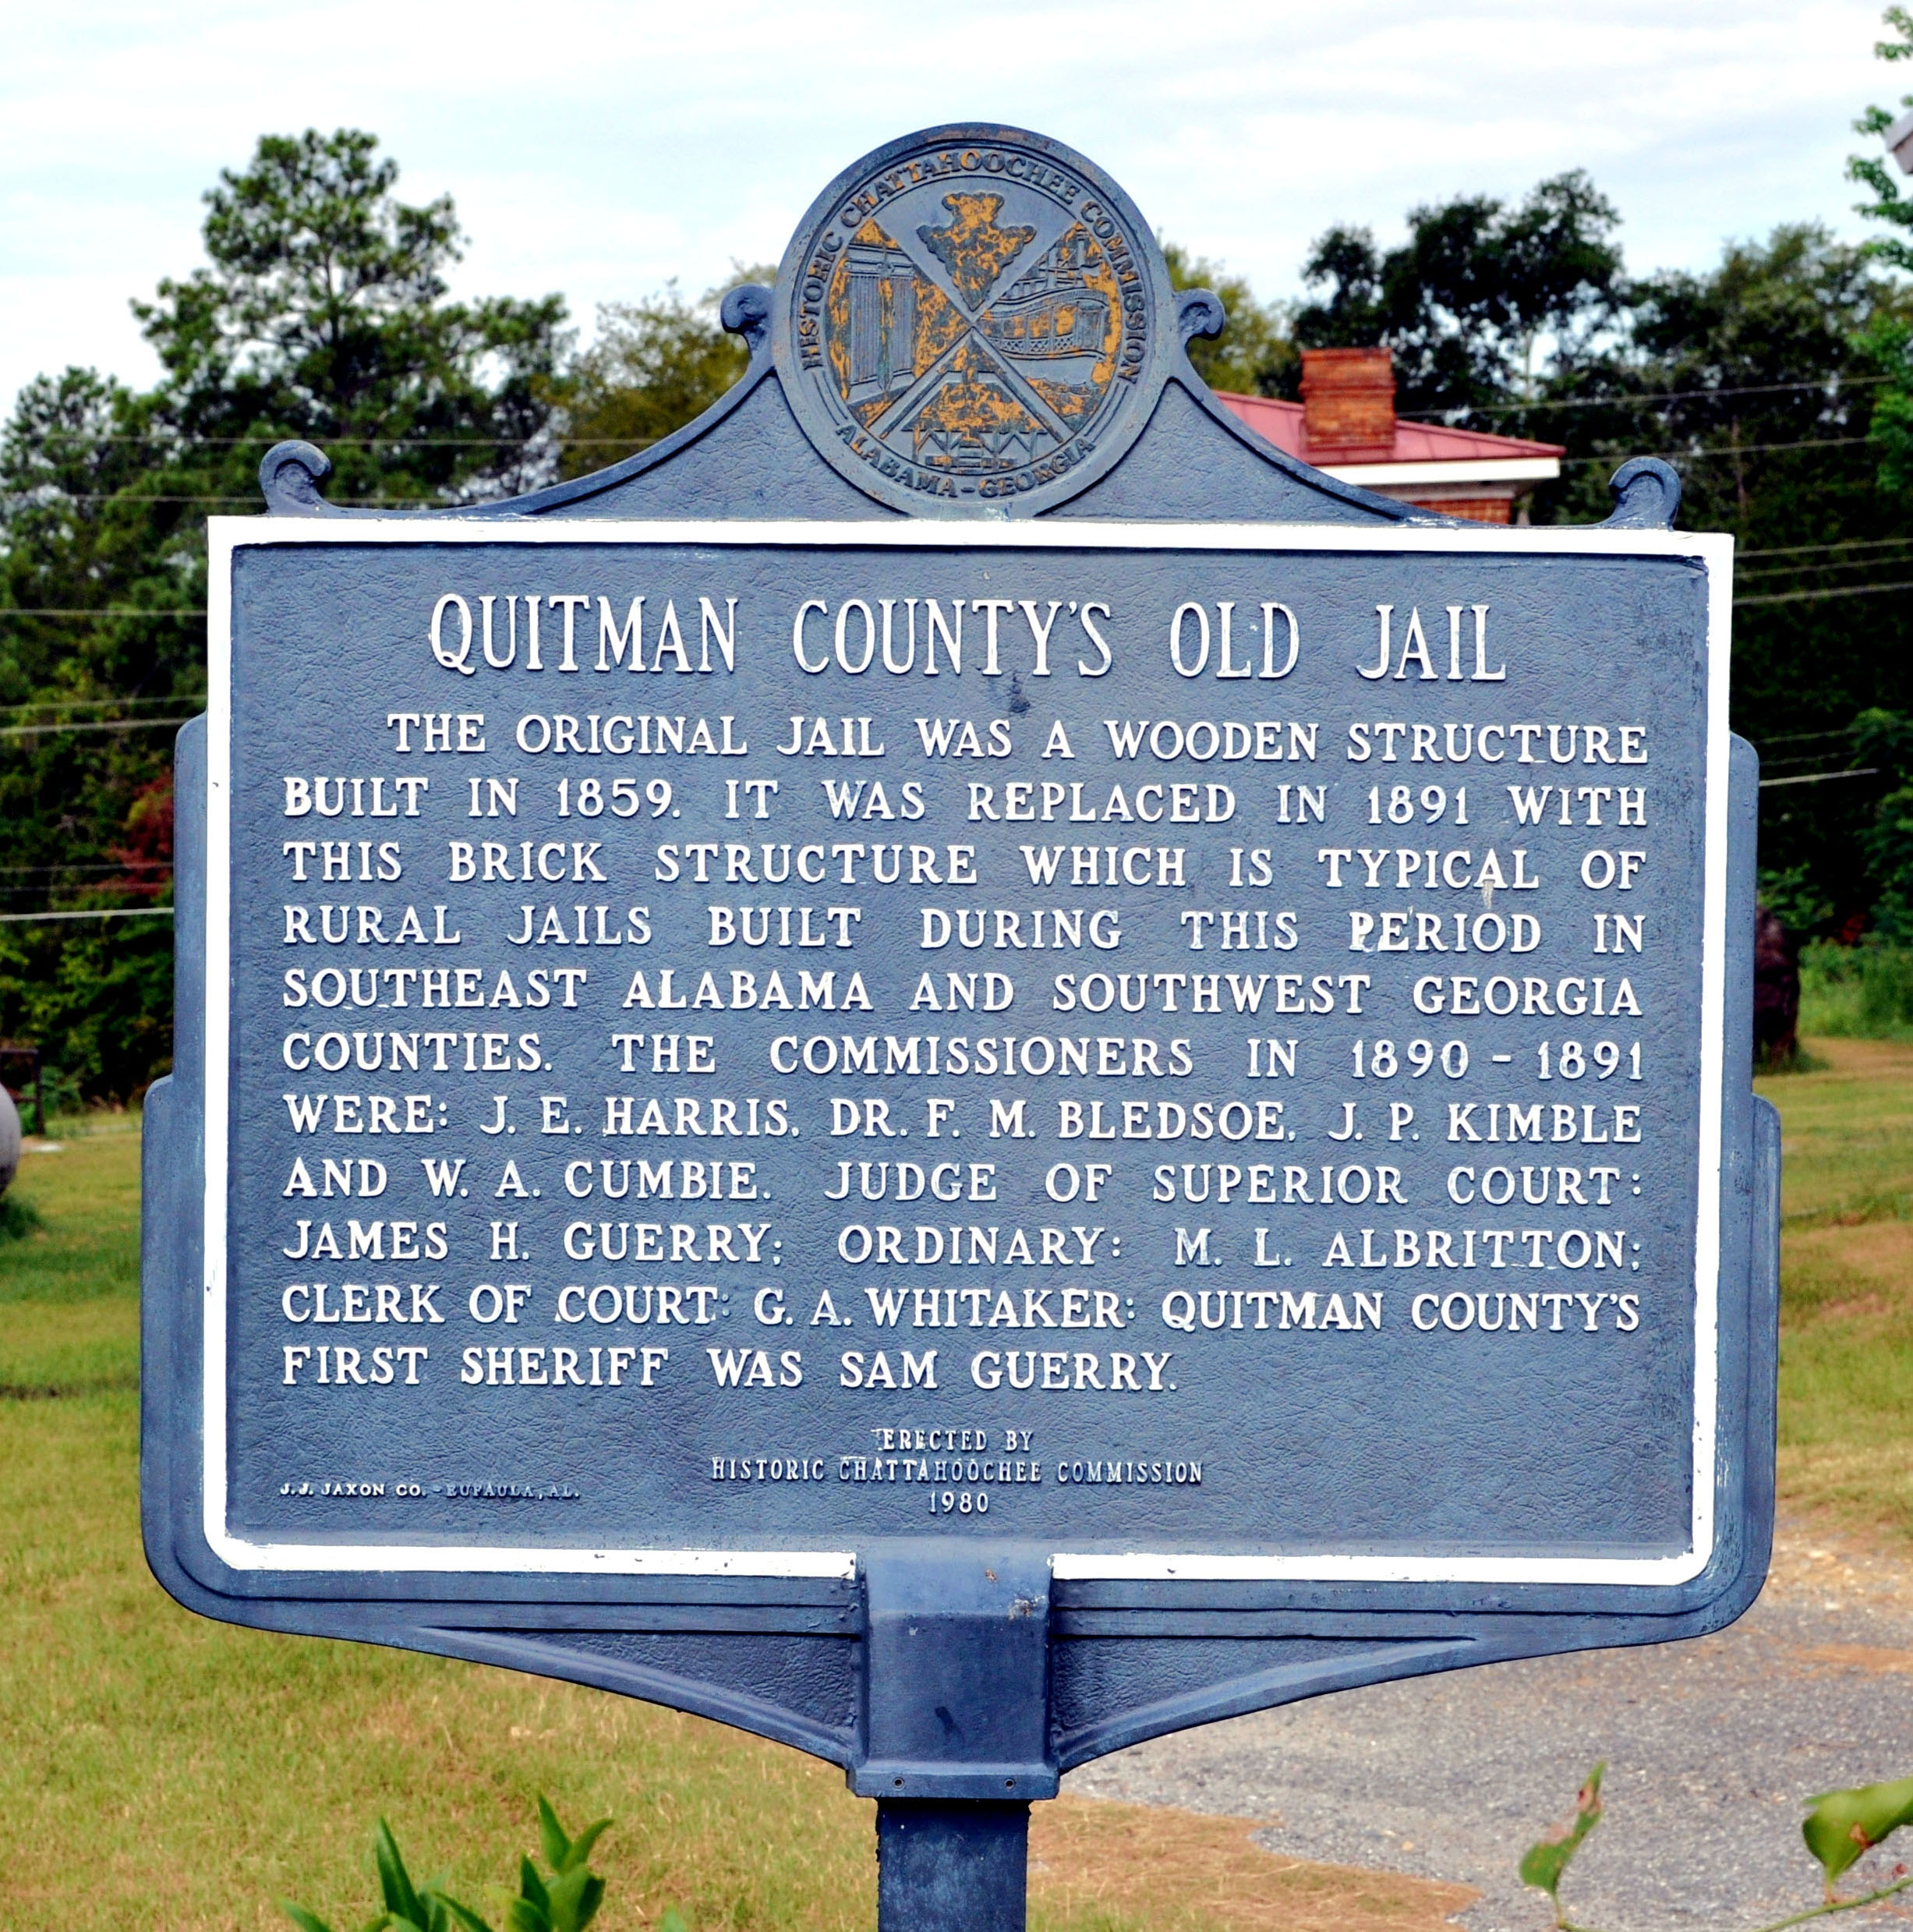 Quitman County's Old Jail Marker